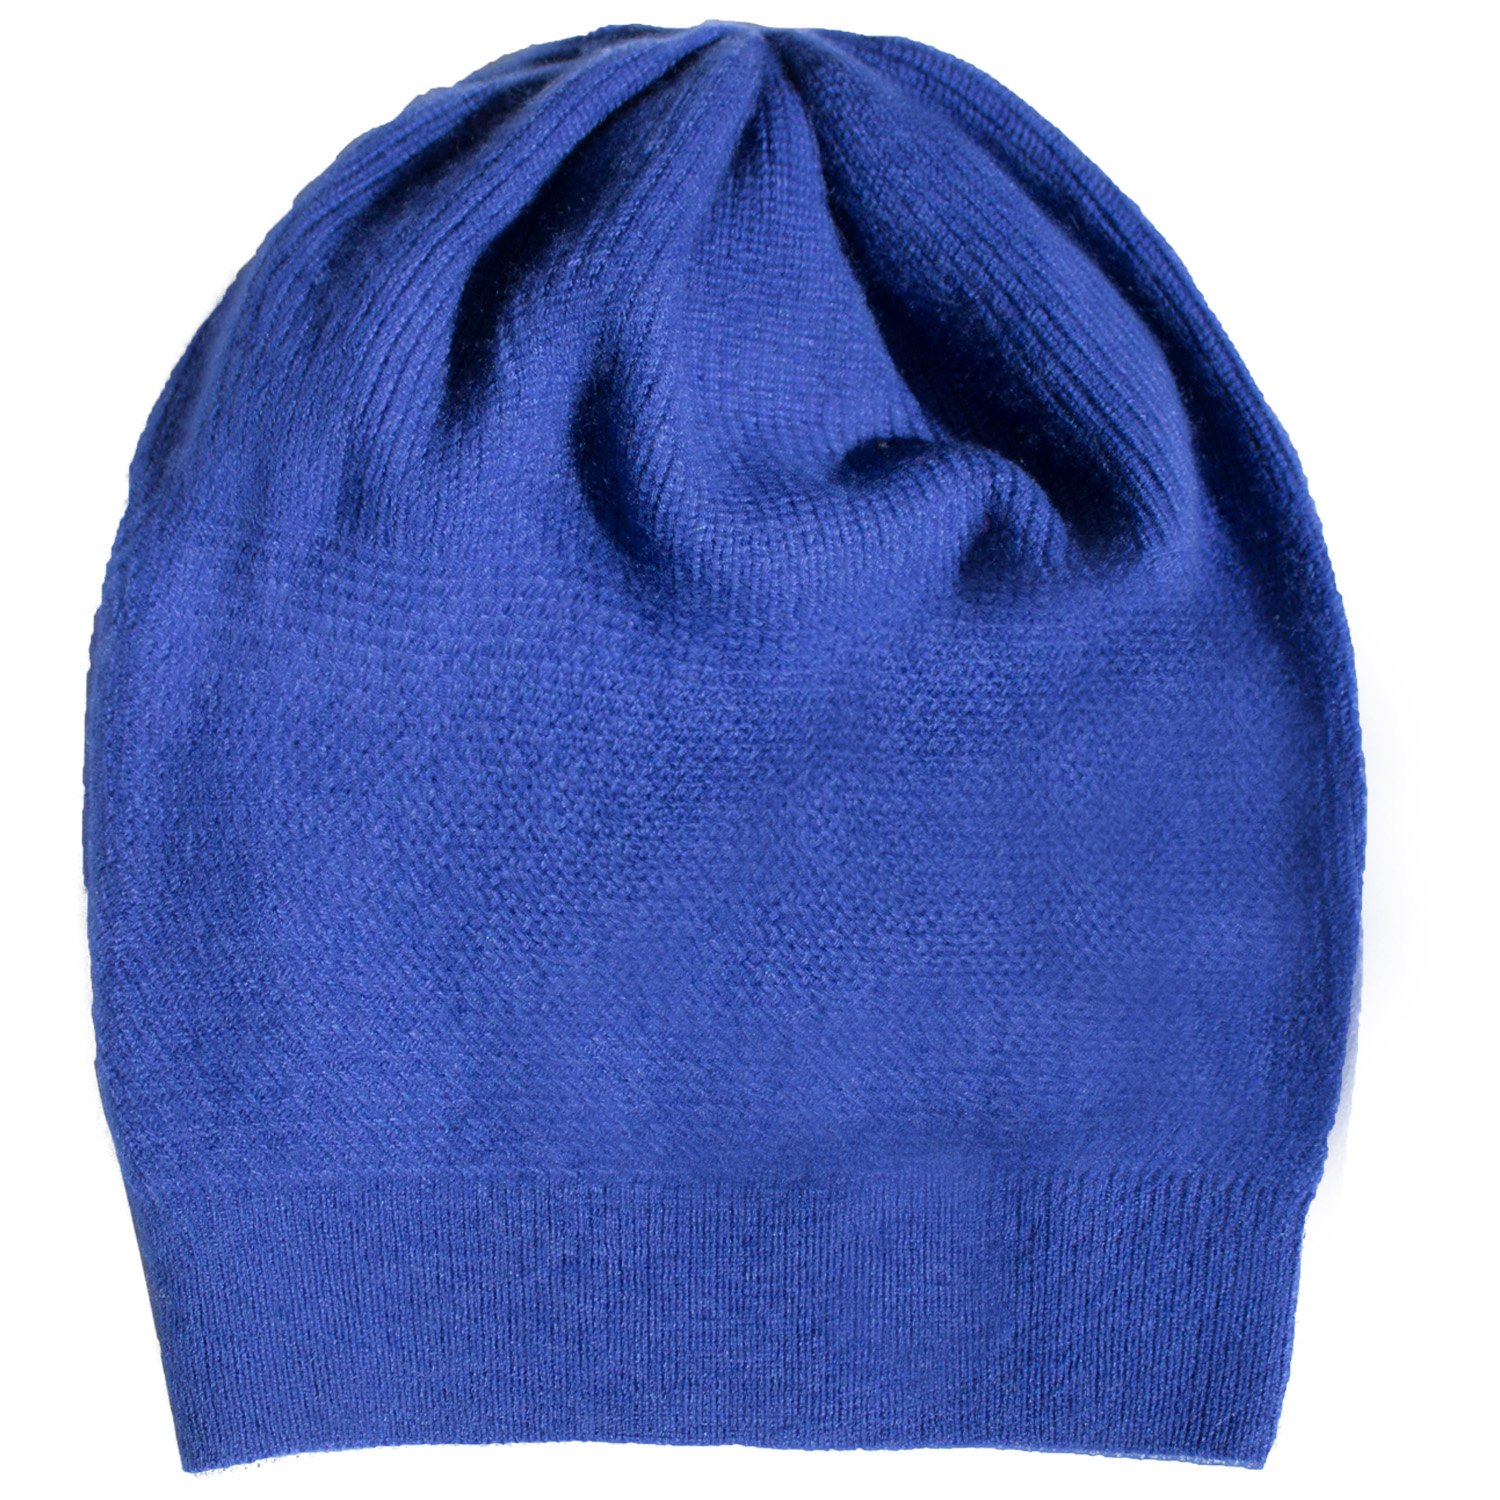 WaySoft Pure 100% Cashmere Beanie for Women in a Gift Box, Oversized Women Beanie Hat, Bring Warm and Luxury to Your Loved Ones, Perfect (Blue) by WaySoft (Image #1)